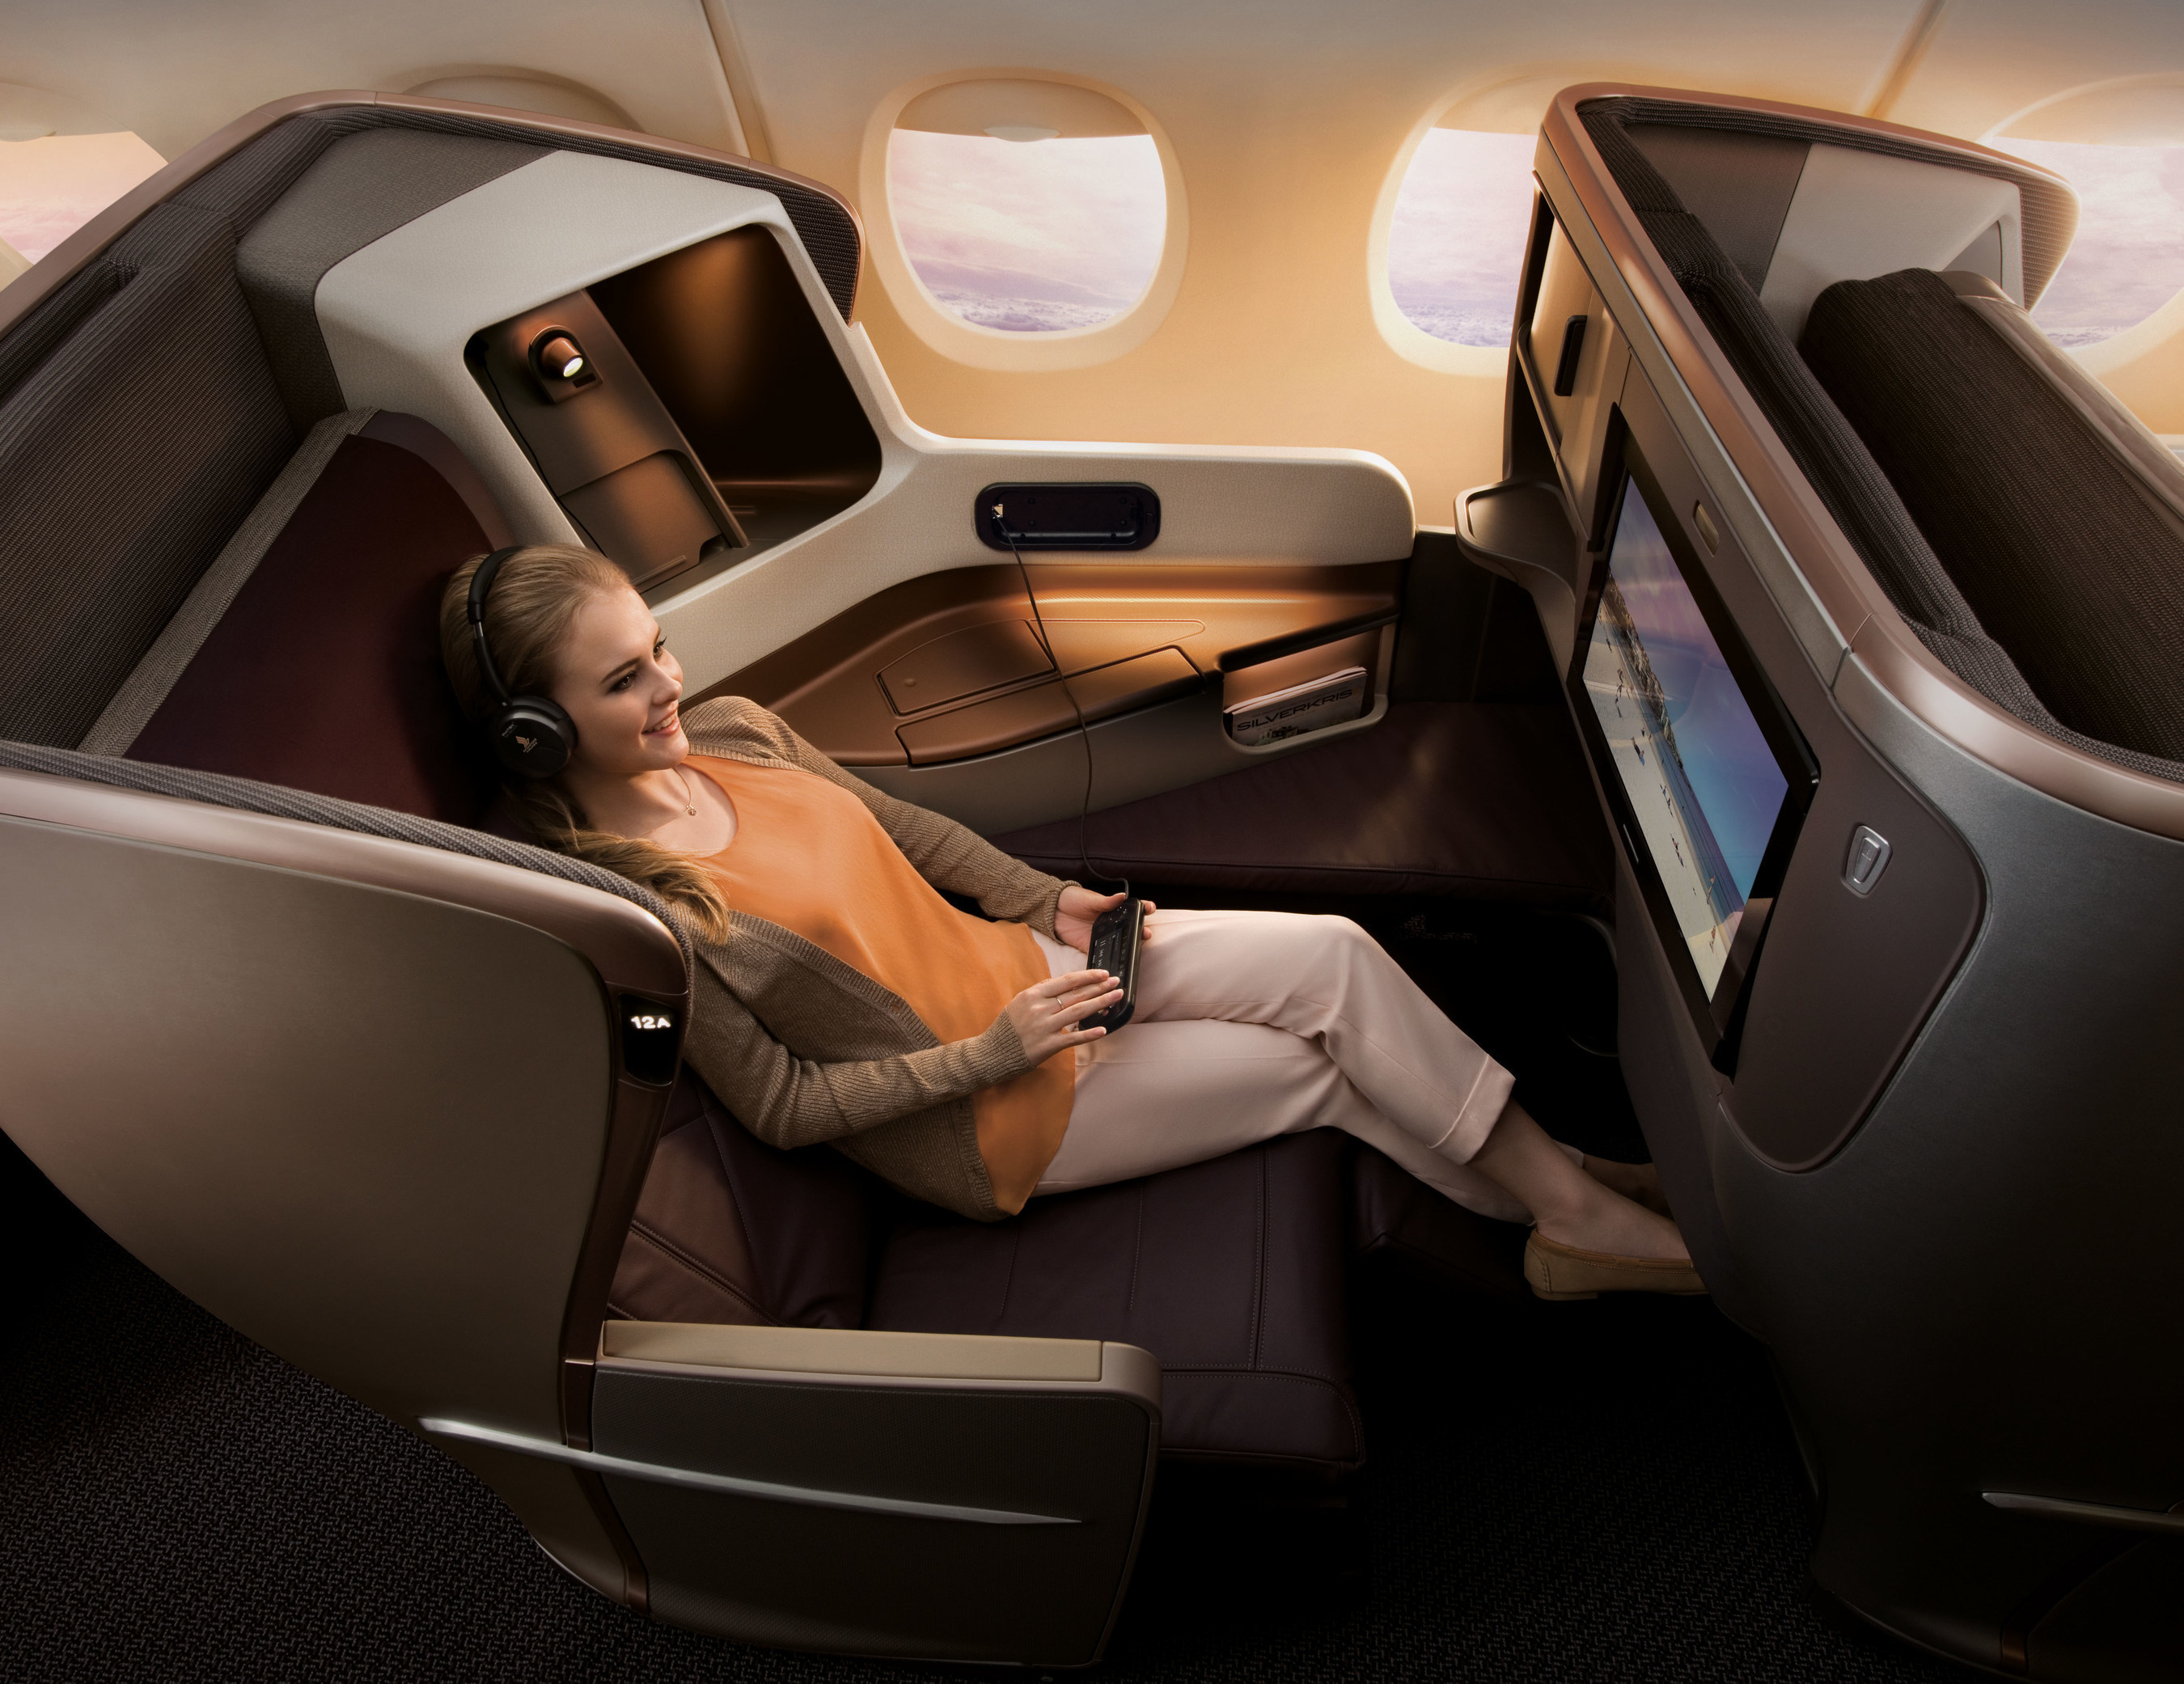 Beginning October 23, 2016, all flights from SFO and LAX will feature SIA's newest, next-generation aircraft interiors and seating in each cabin (pictured: Business Class).